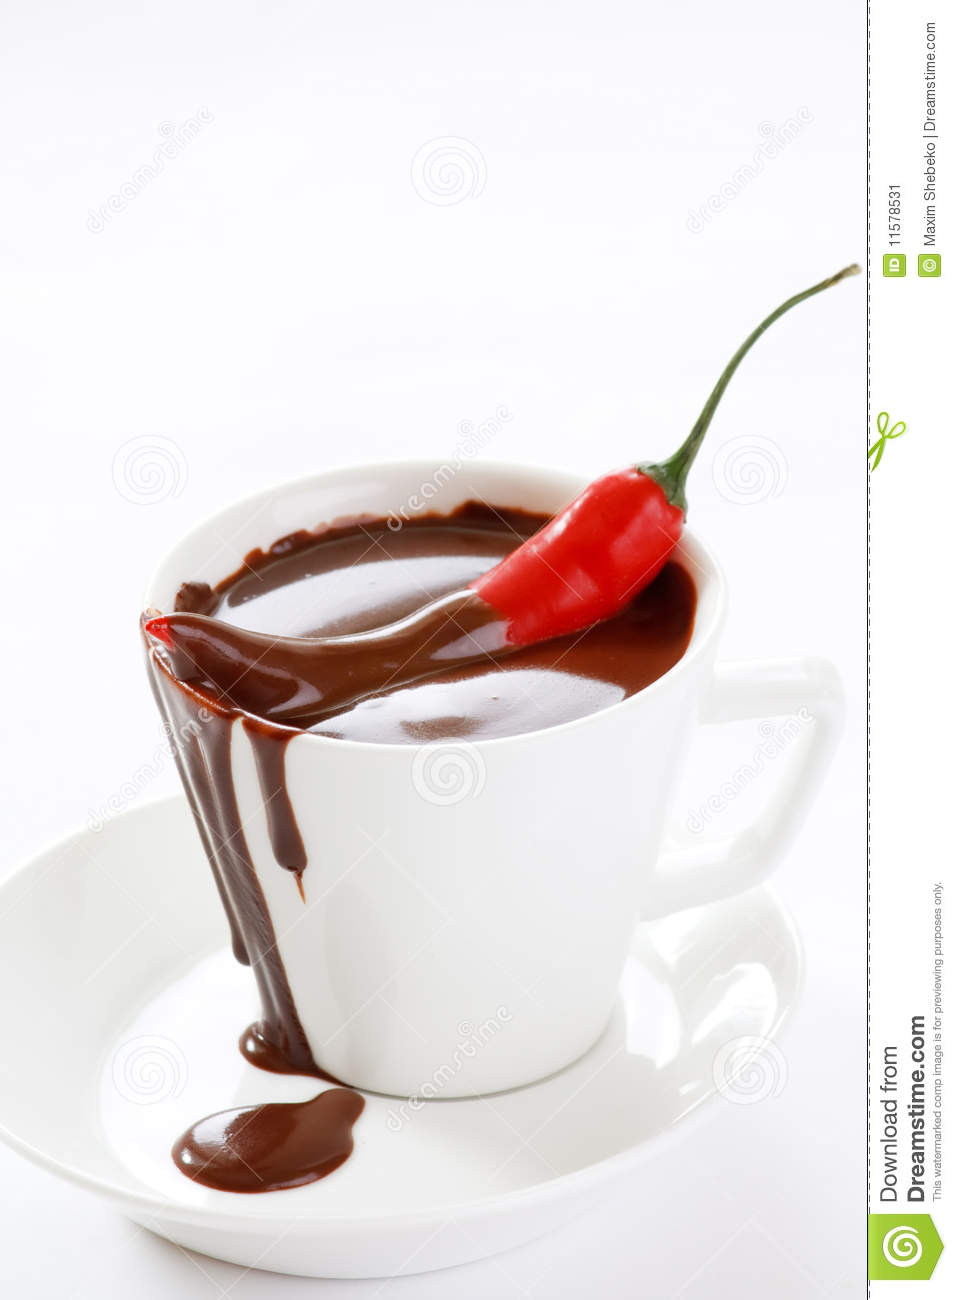 Hot Chocolate With Chili Stock Image - Image: 11578531